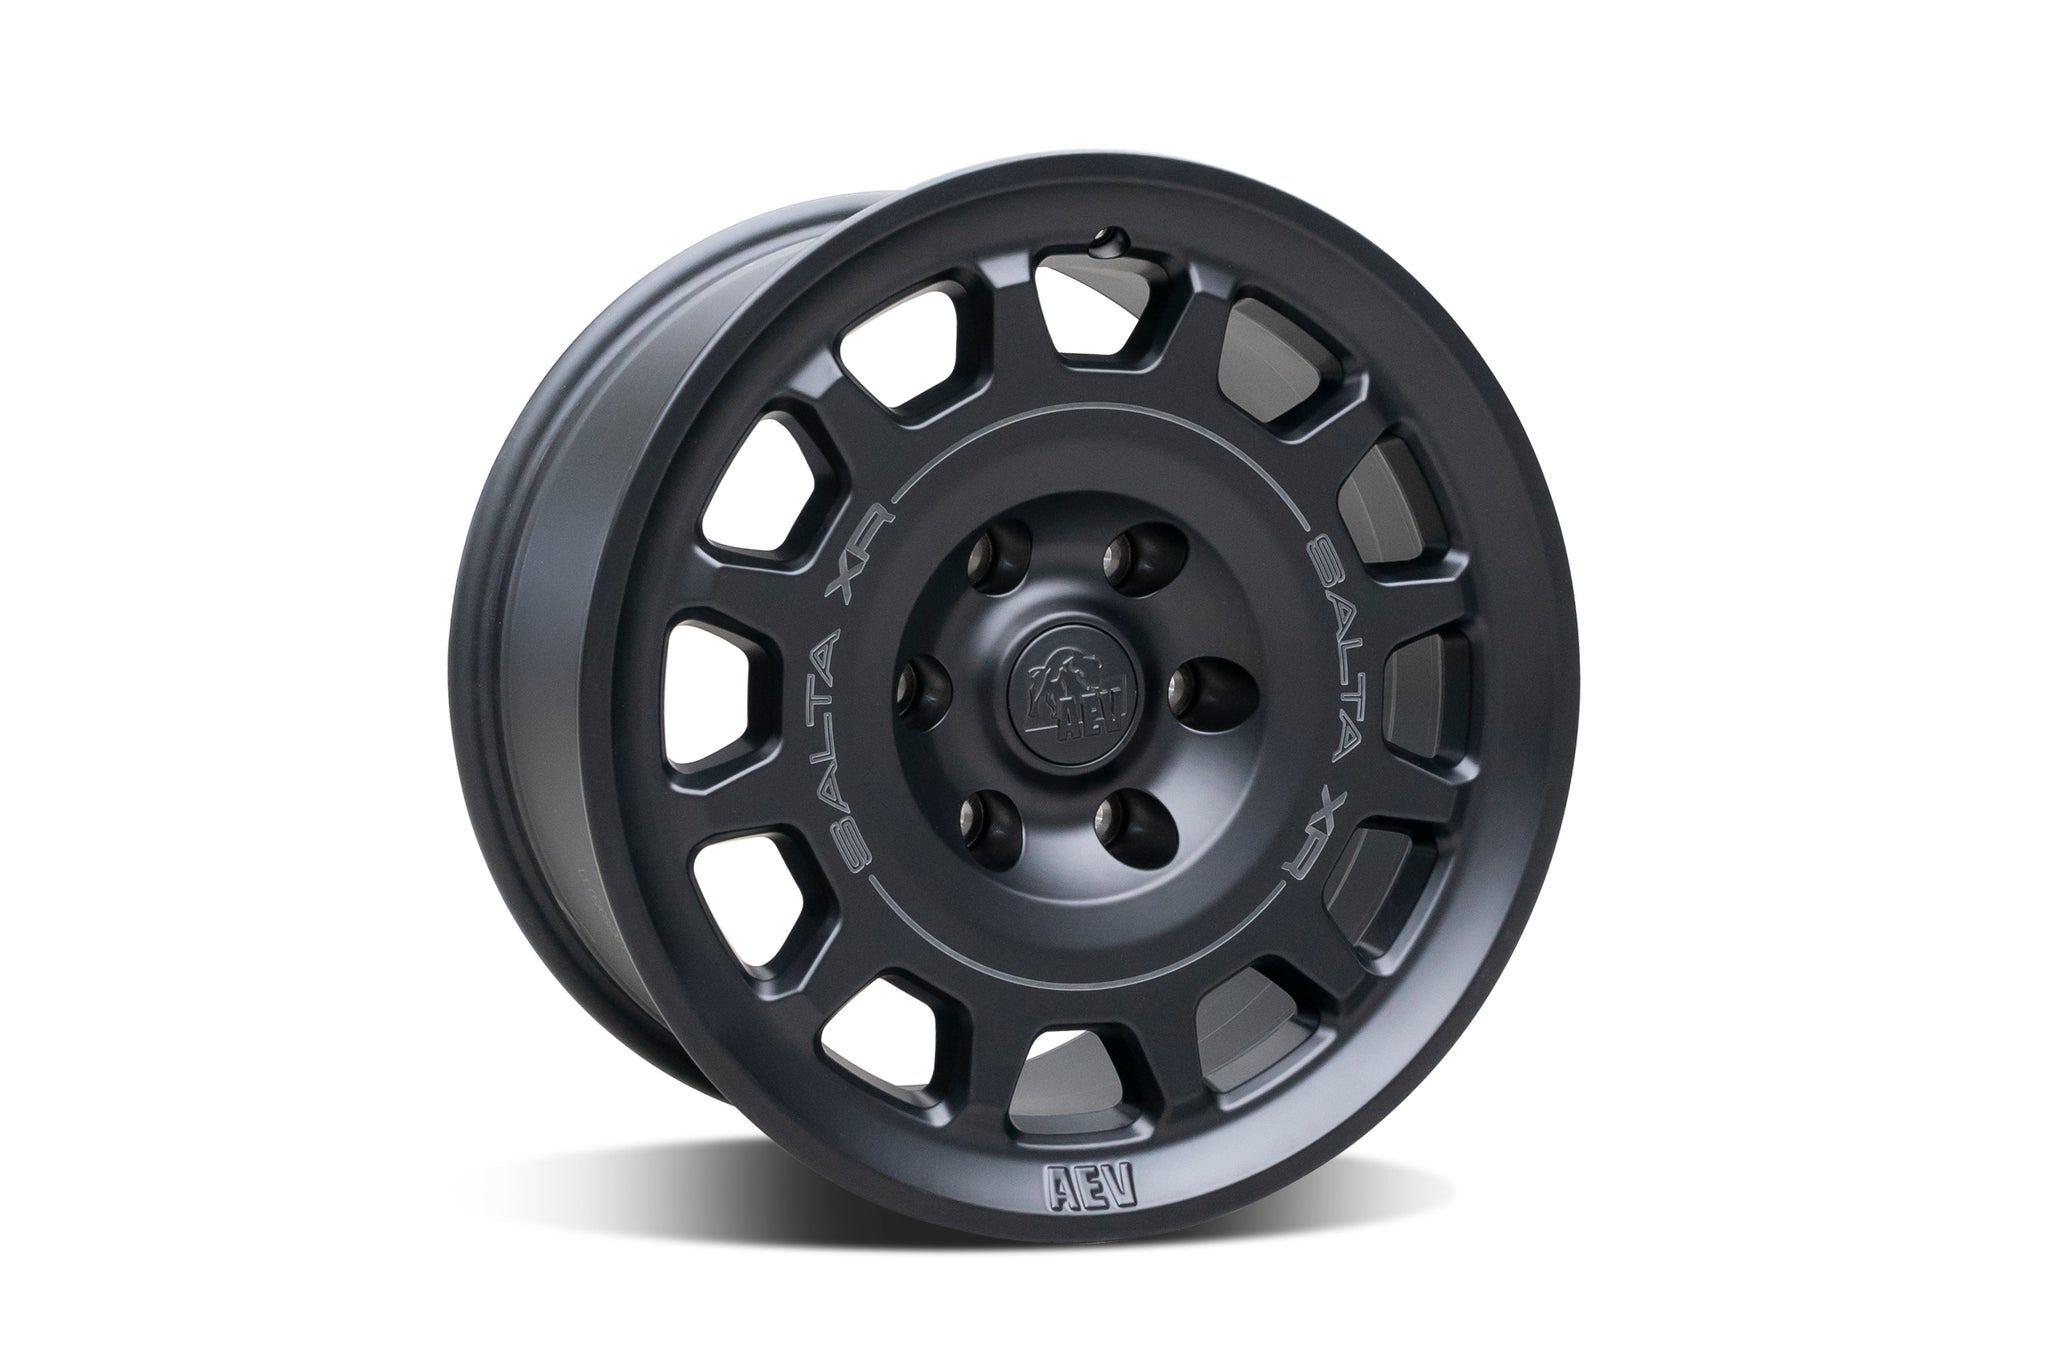 AEV Salta XR Wheel for Toyota Tacoma, 4Runner, Prado